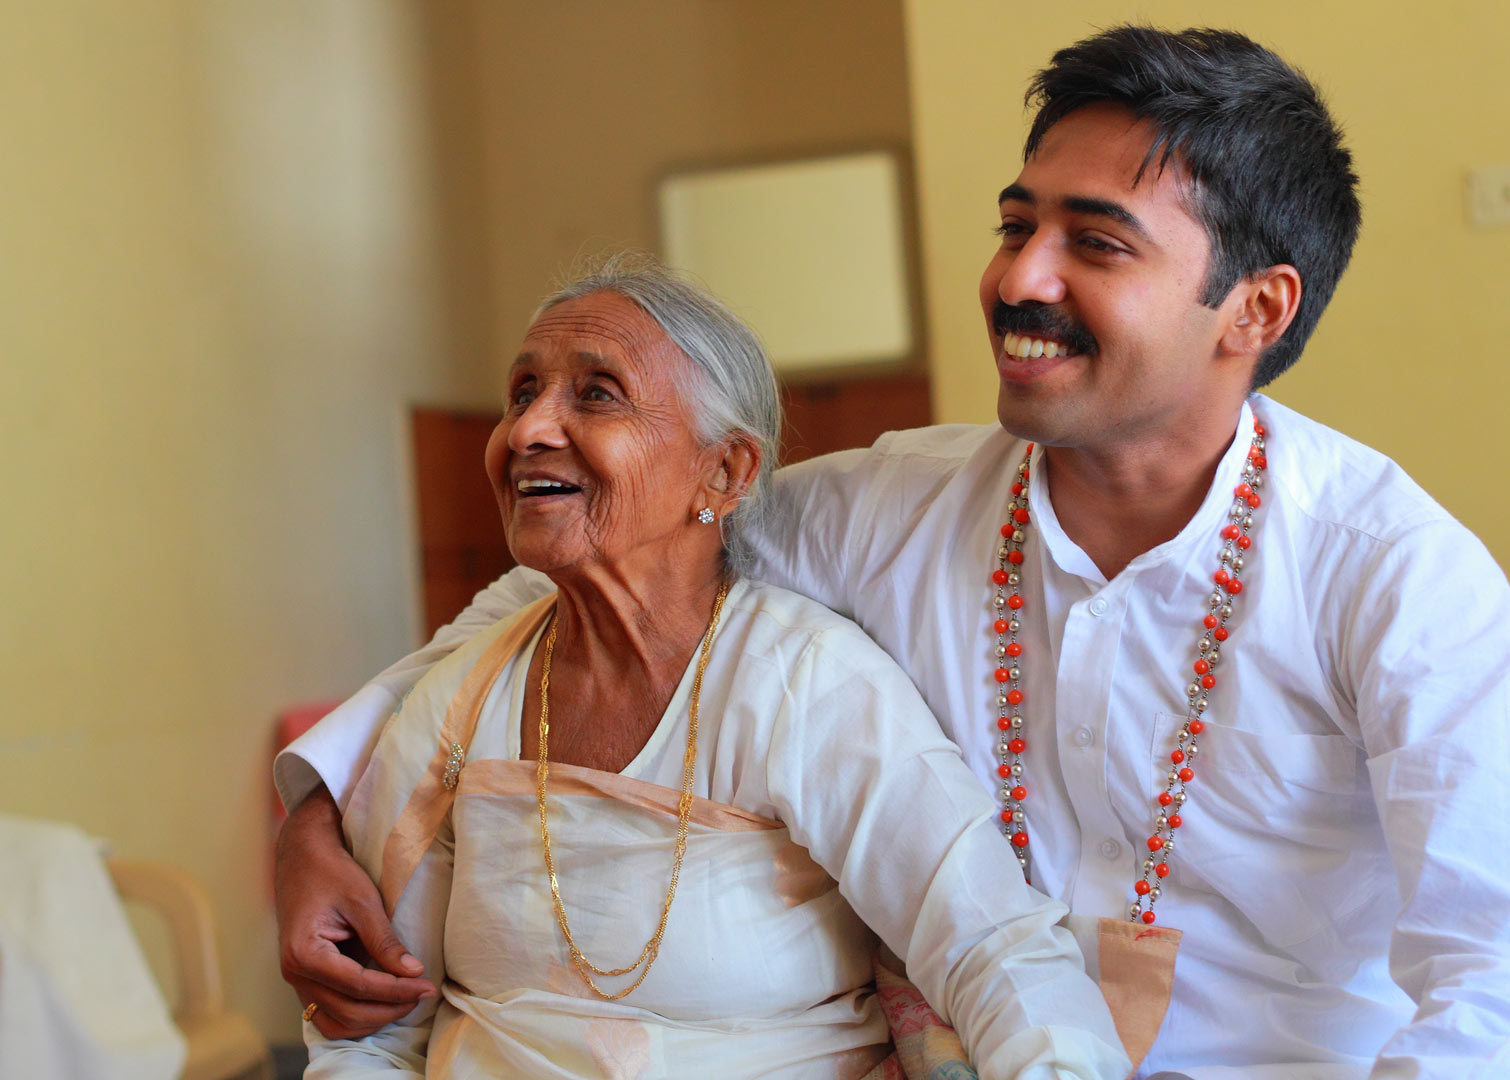 Candid shot of the Bridegroom with his grandmother on the day of the wedding